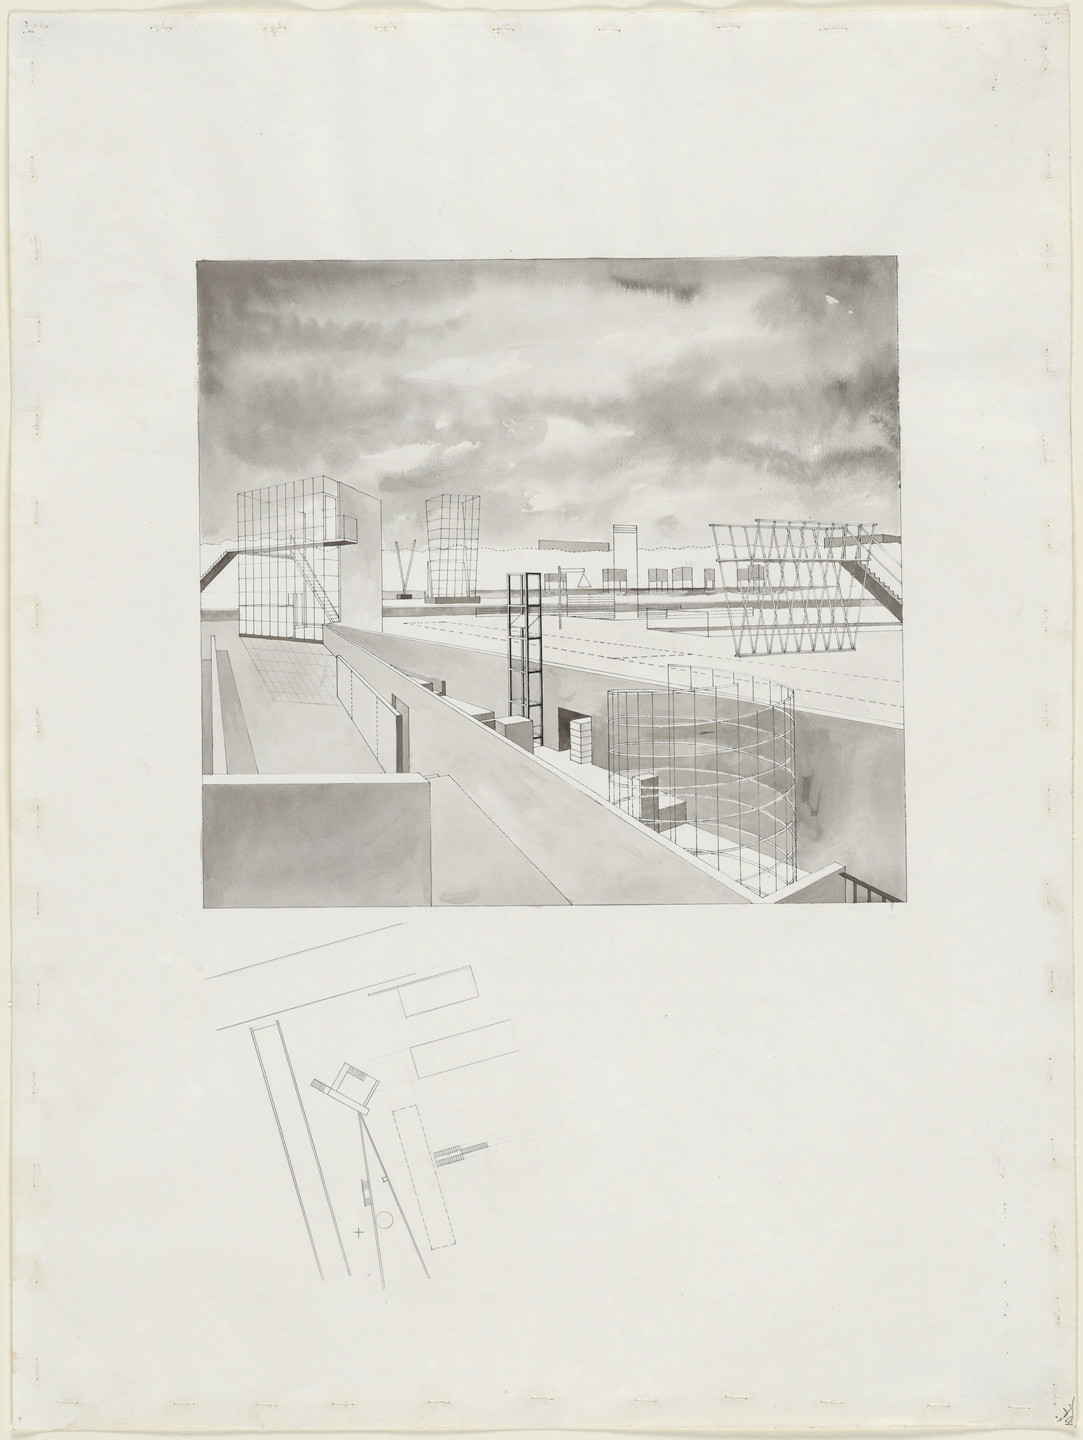 Steven Holl. Porta Vittoria, project, Milan, Italy, Garden of Sounds, perspective and plan. 1986